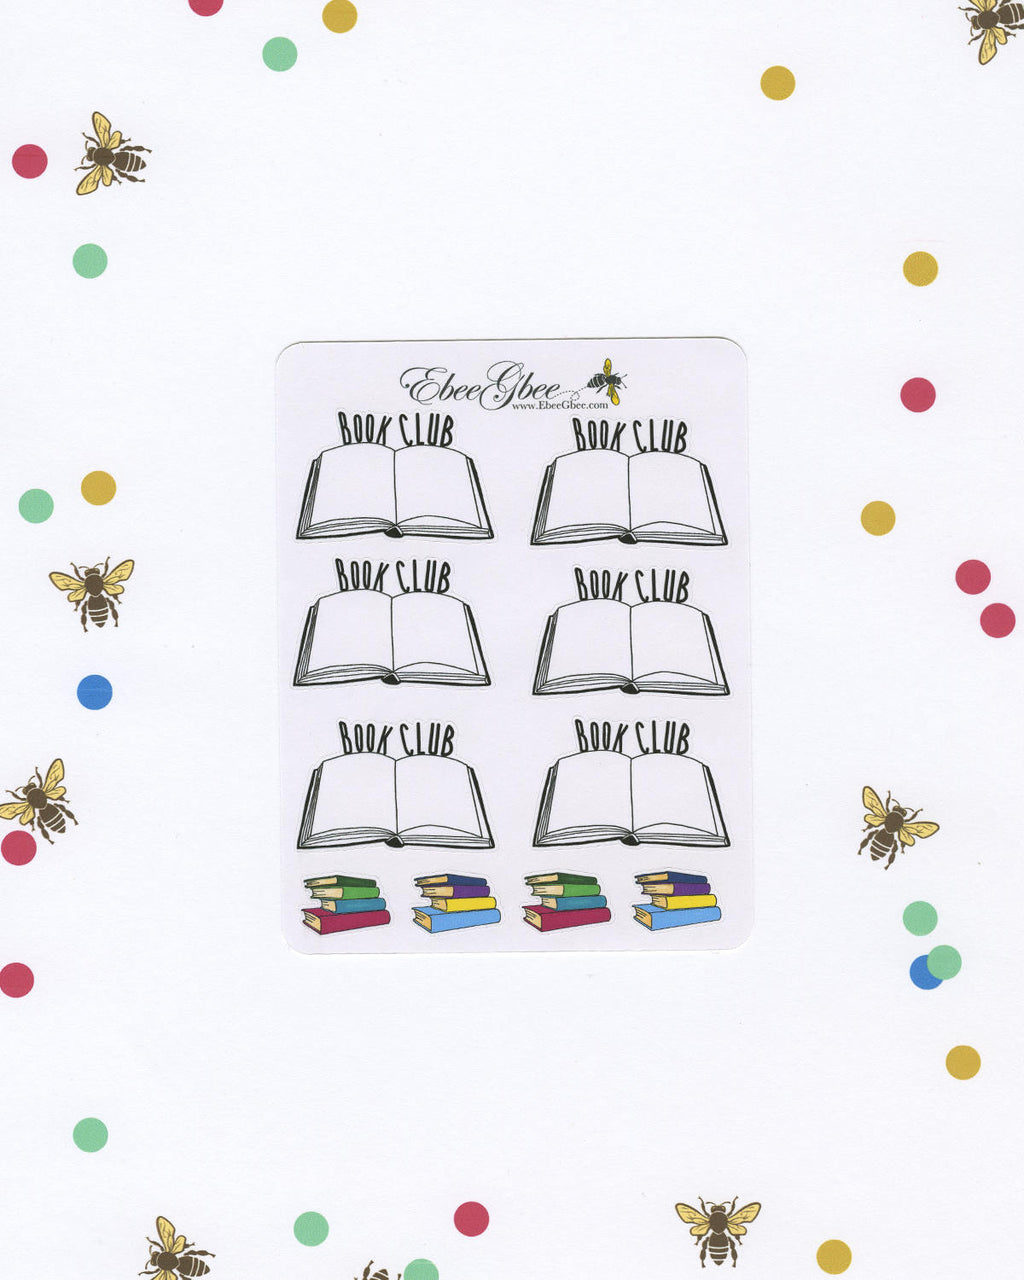 BOOK CLUB Planner Stickers | Hand Drawn